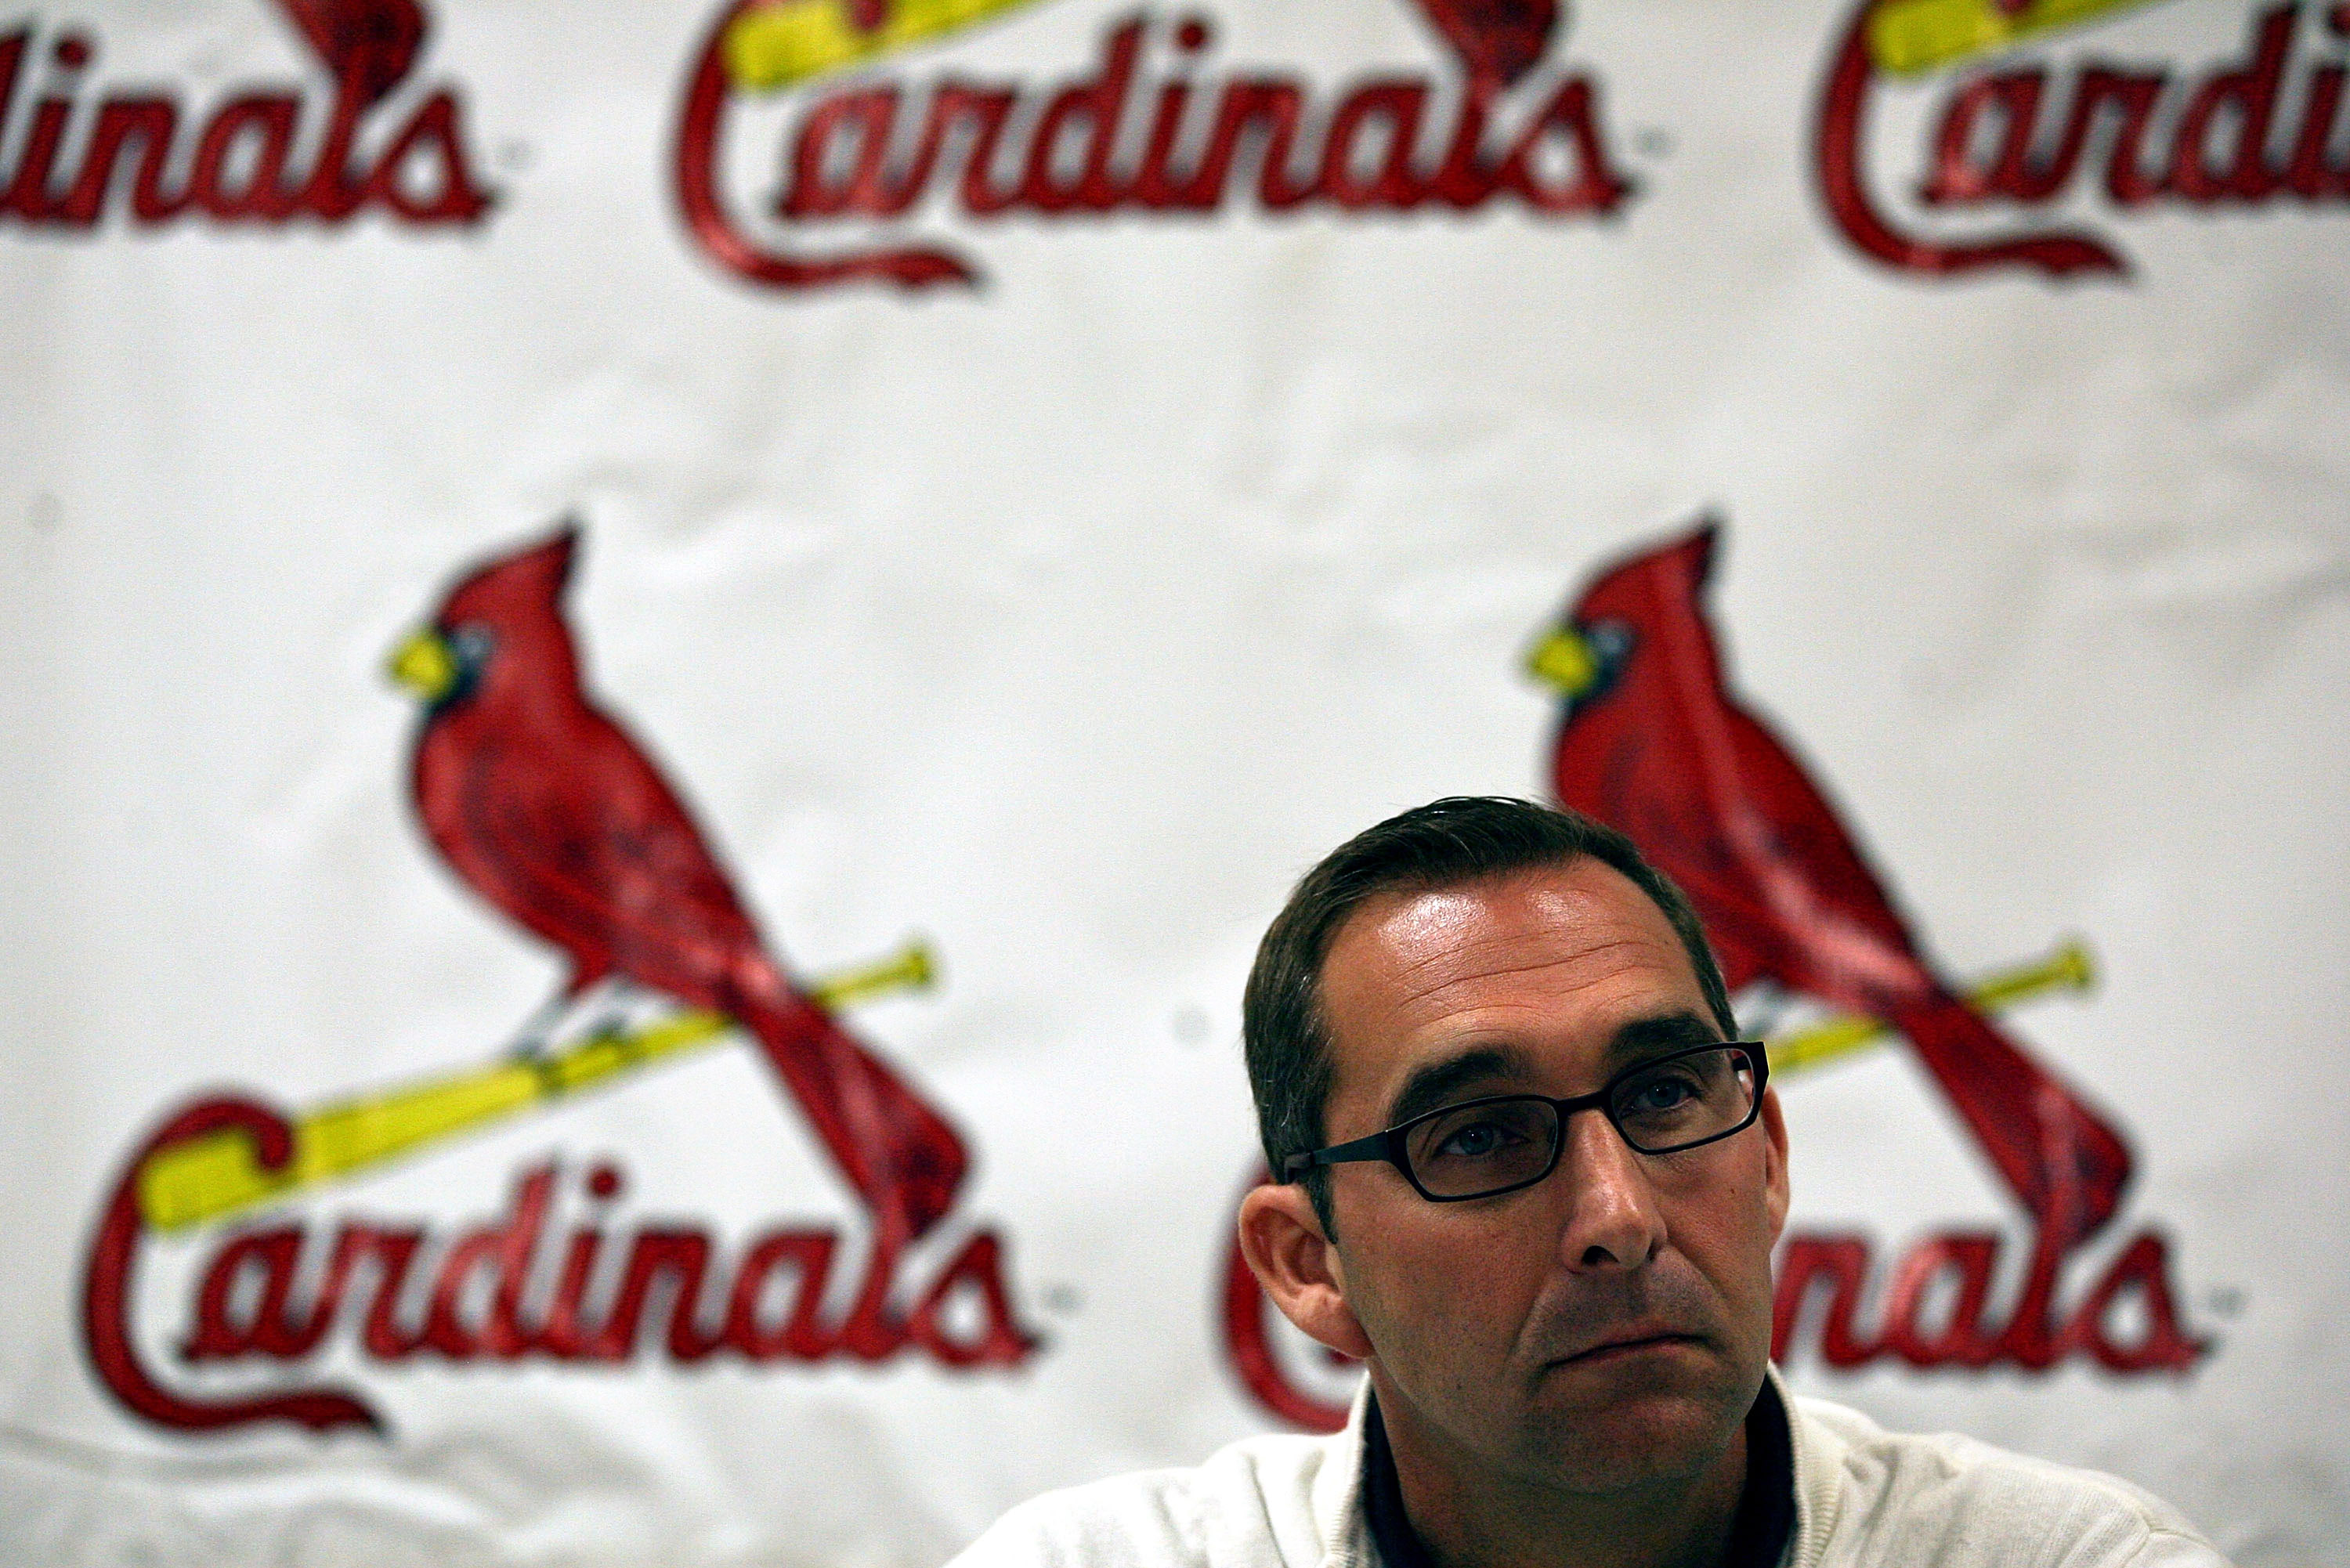 St. Louis Cardinals Spring Training Workout Session